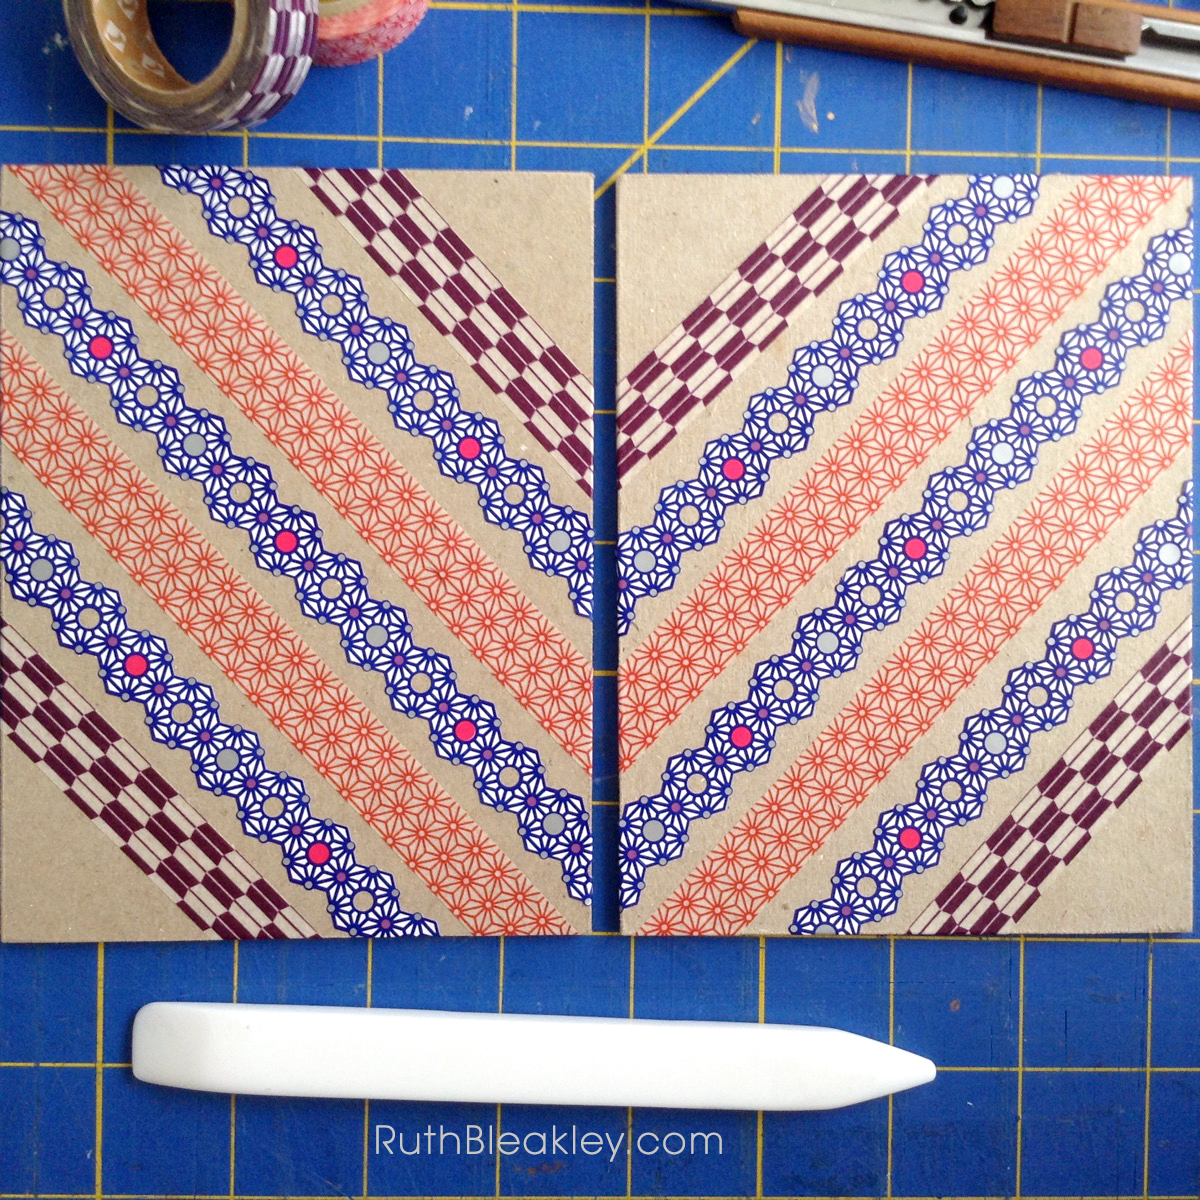 Making Washi Tape Journals with ladder stitching by Ruth Bleakley - 12